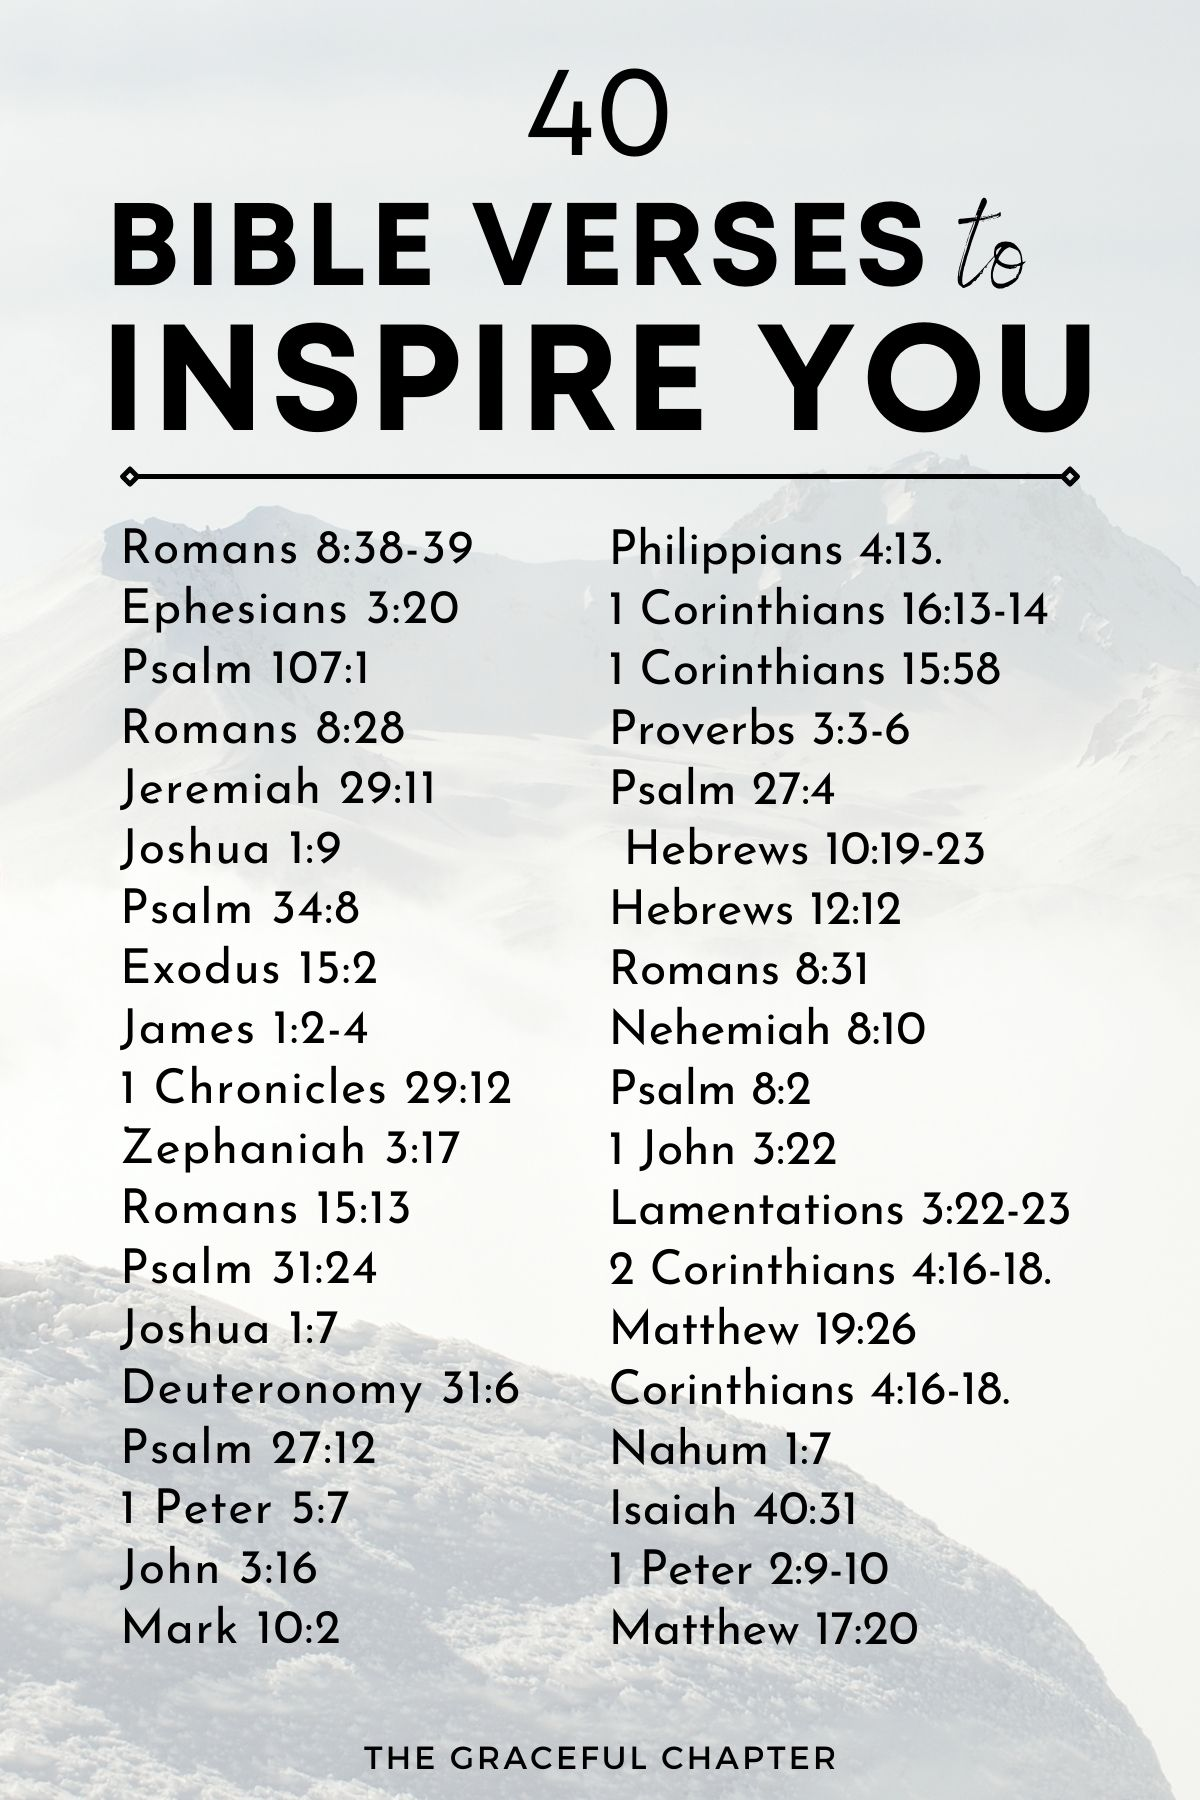 40 bible verses to inspire you